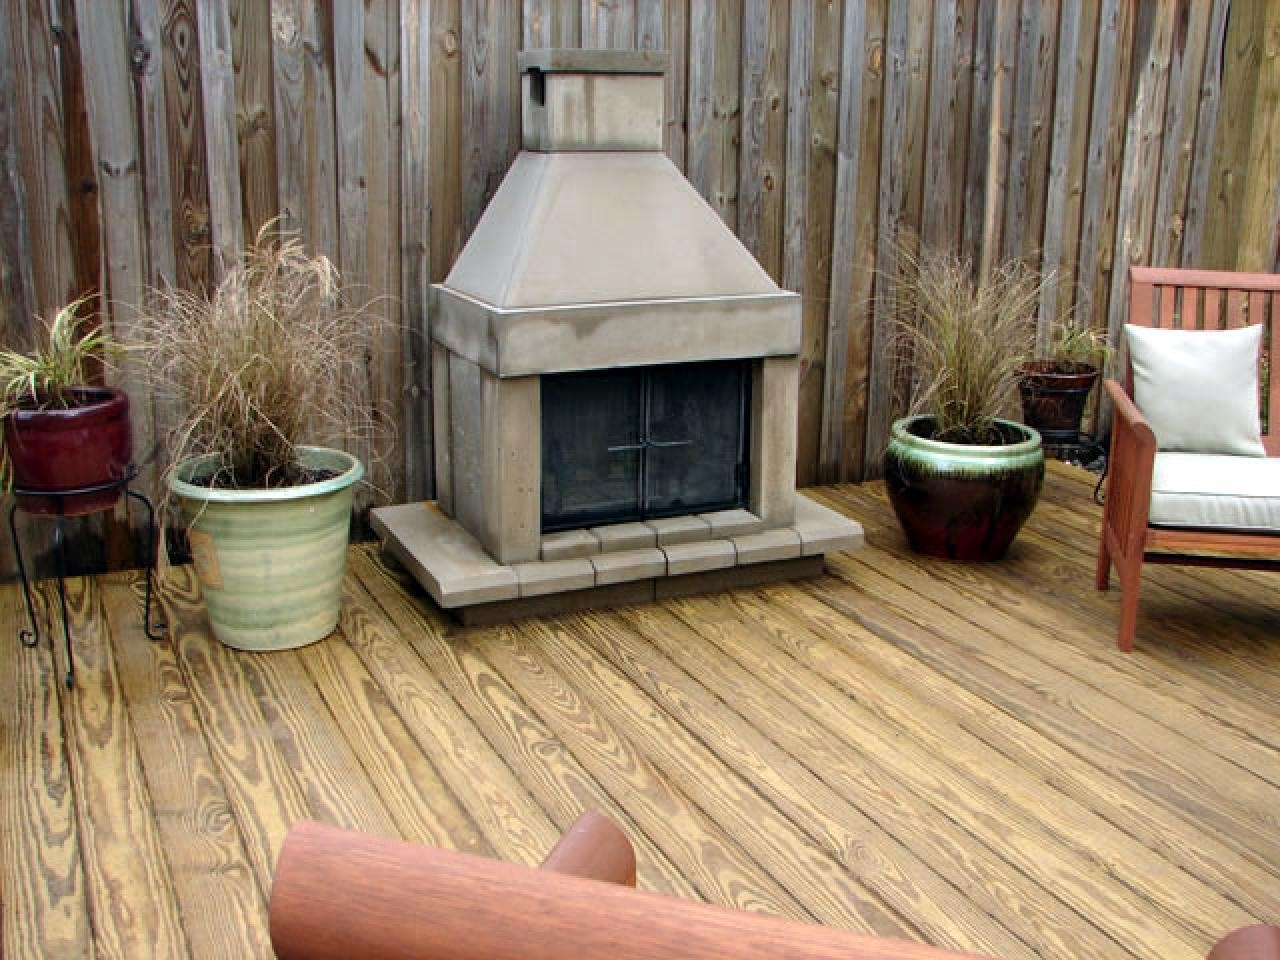 66 Fire Pit And Outdoor Fireplace Ideas Diy Network Blog Made For Inexpensive Outdoor Fireplace Popular Today Inexpensive Outdoor Fireplace